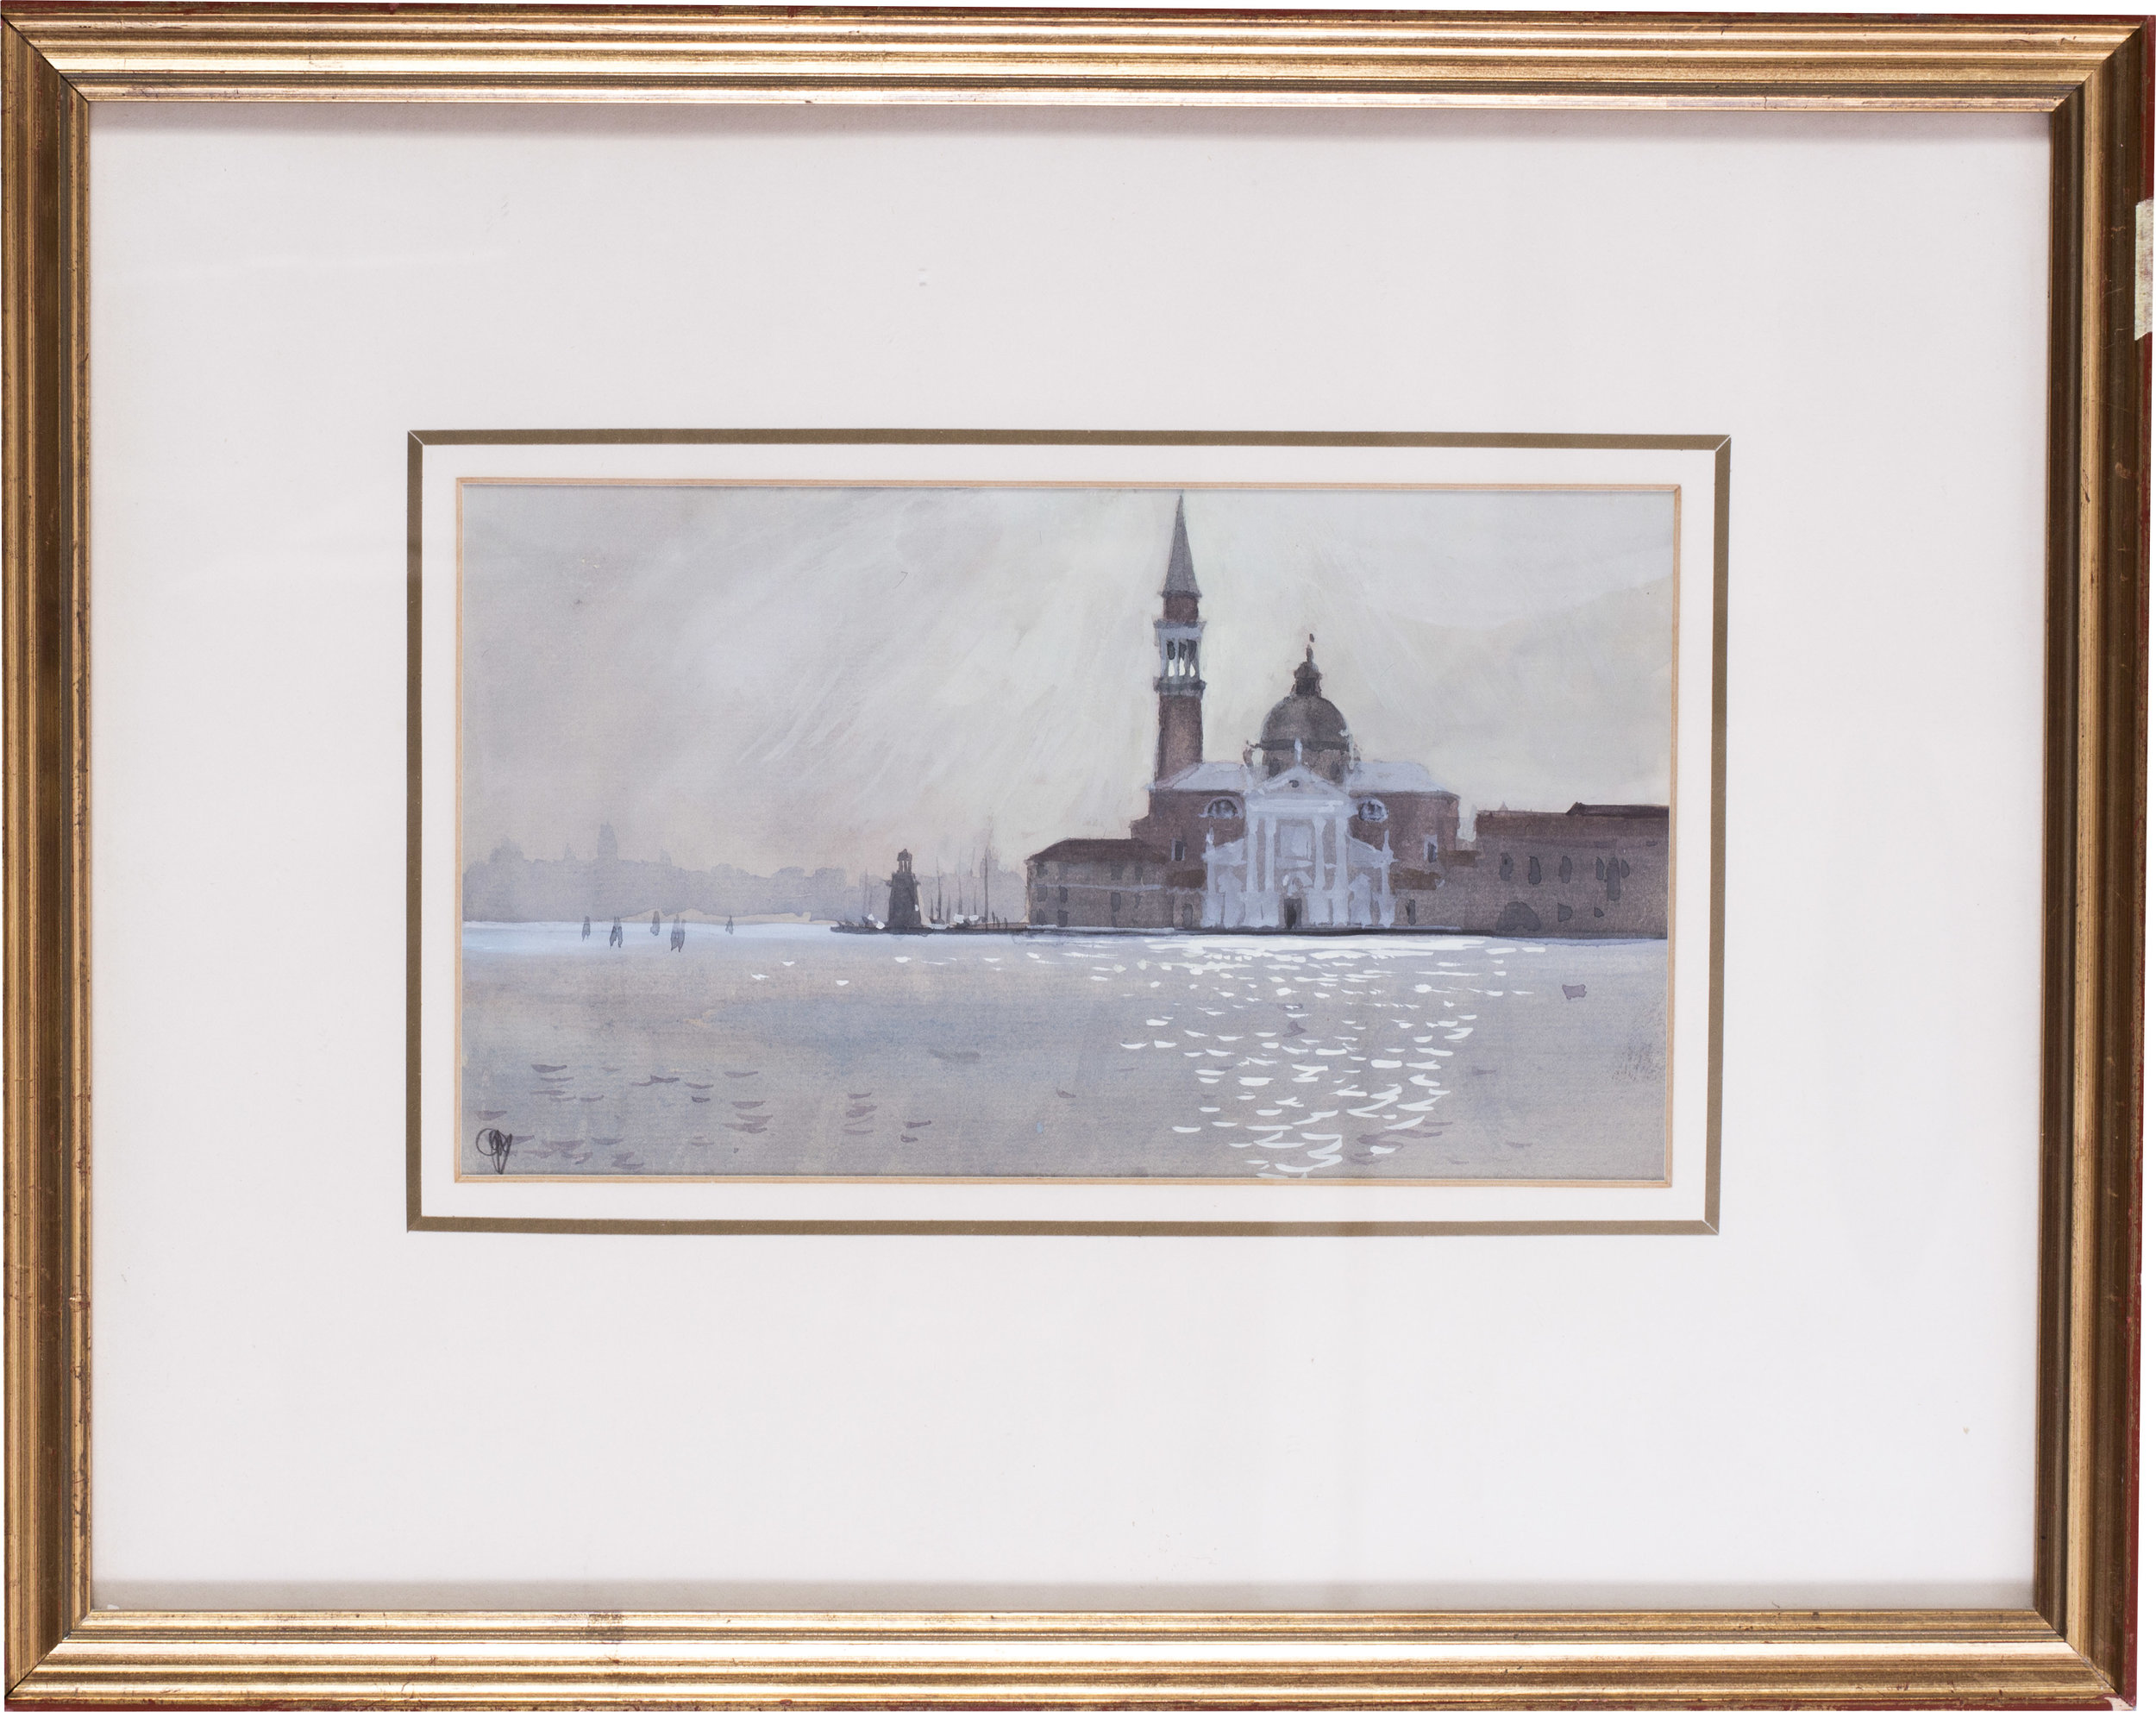 Sunrise through mist, San Giorgio, Venice,  circa 1986   Acrylic and watercolour on paper   Monogrammed (lower left) and further signed on the reverse   5.1/4 x 9.1/4 in. (13.5 x 23.5 cm.)   Provenance: The Catto Gallery, London   Price: £500